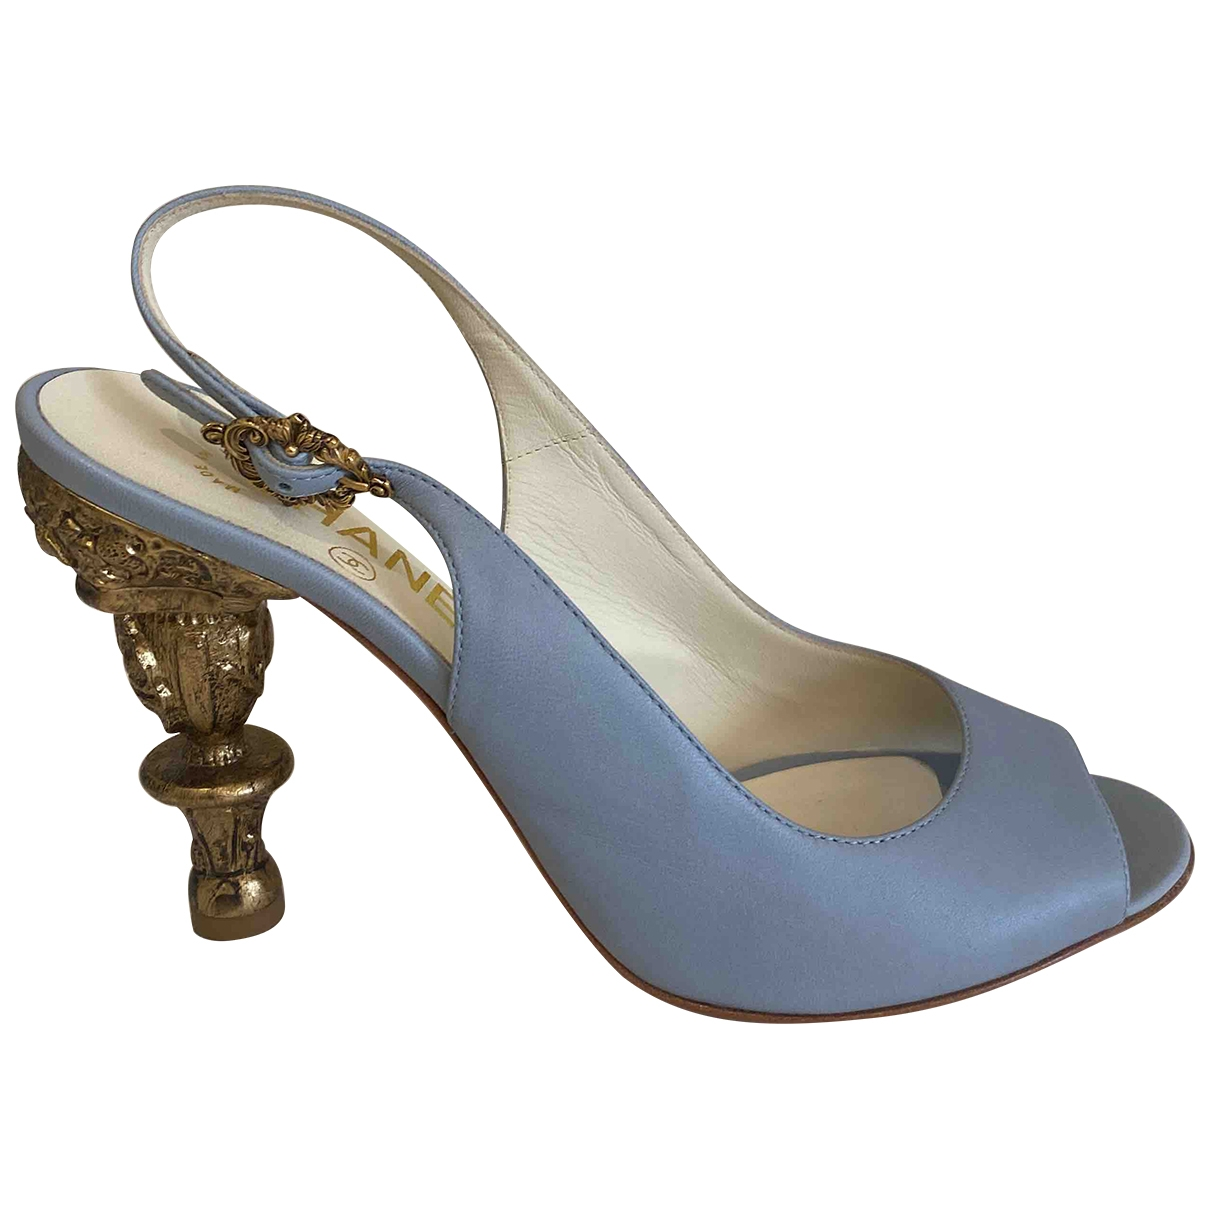 Chanel Slingback Blue Leather Heels for Women